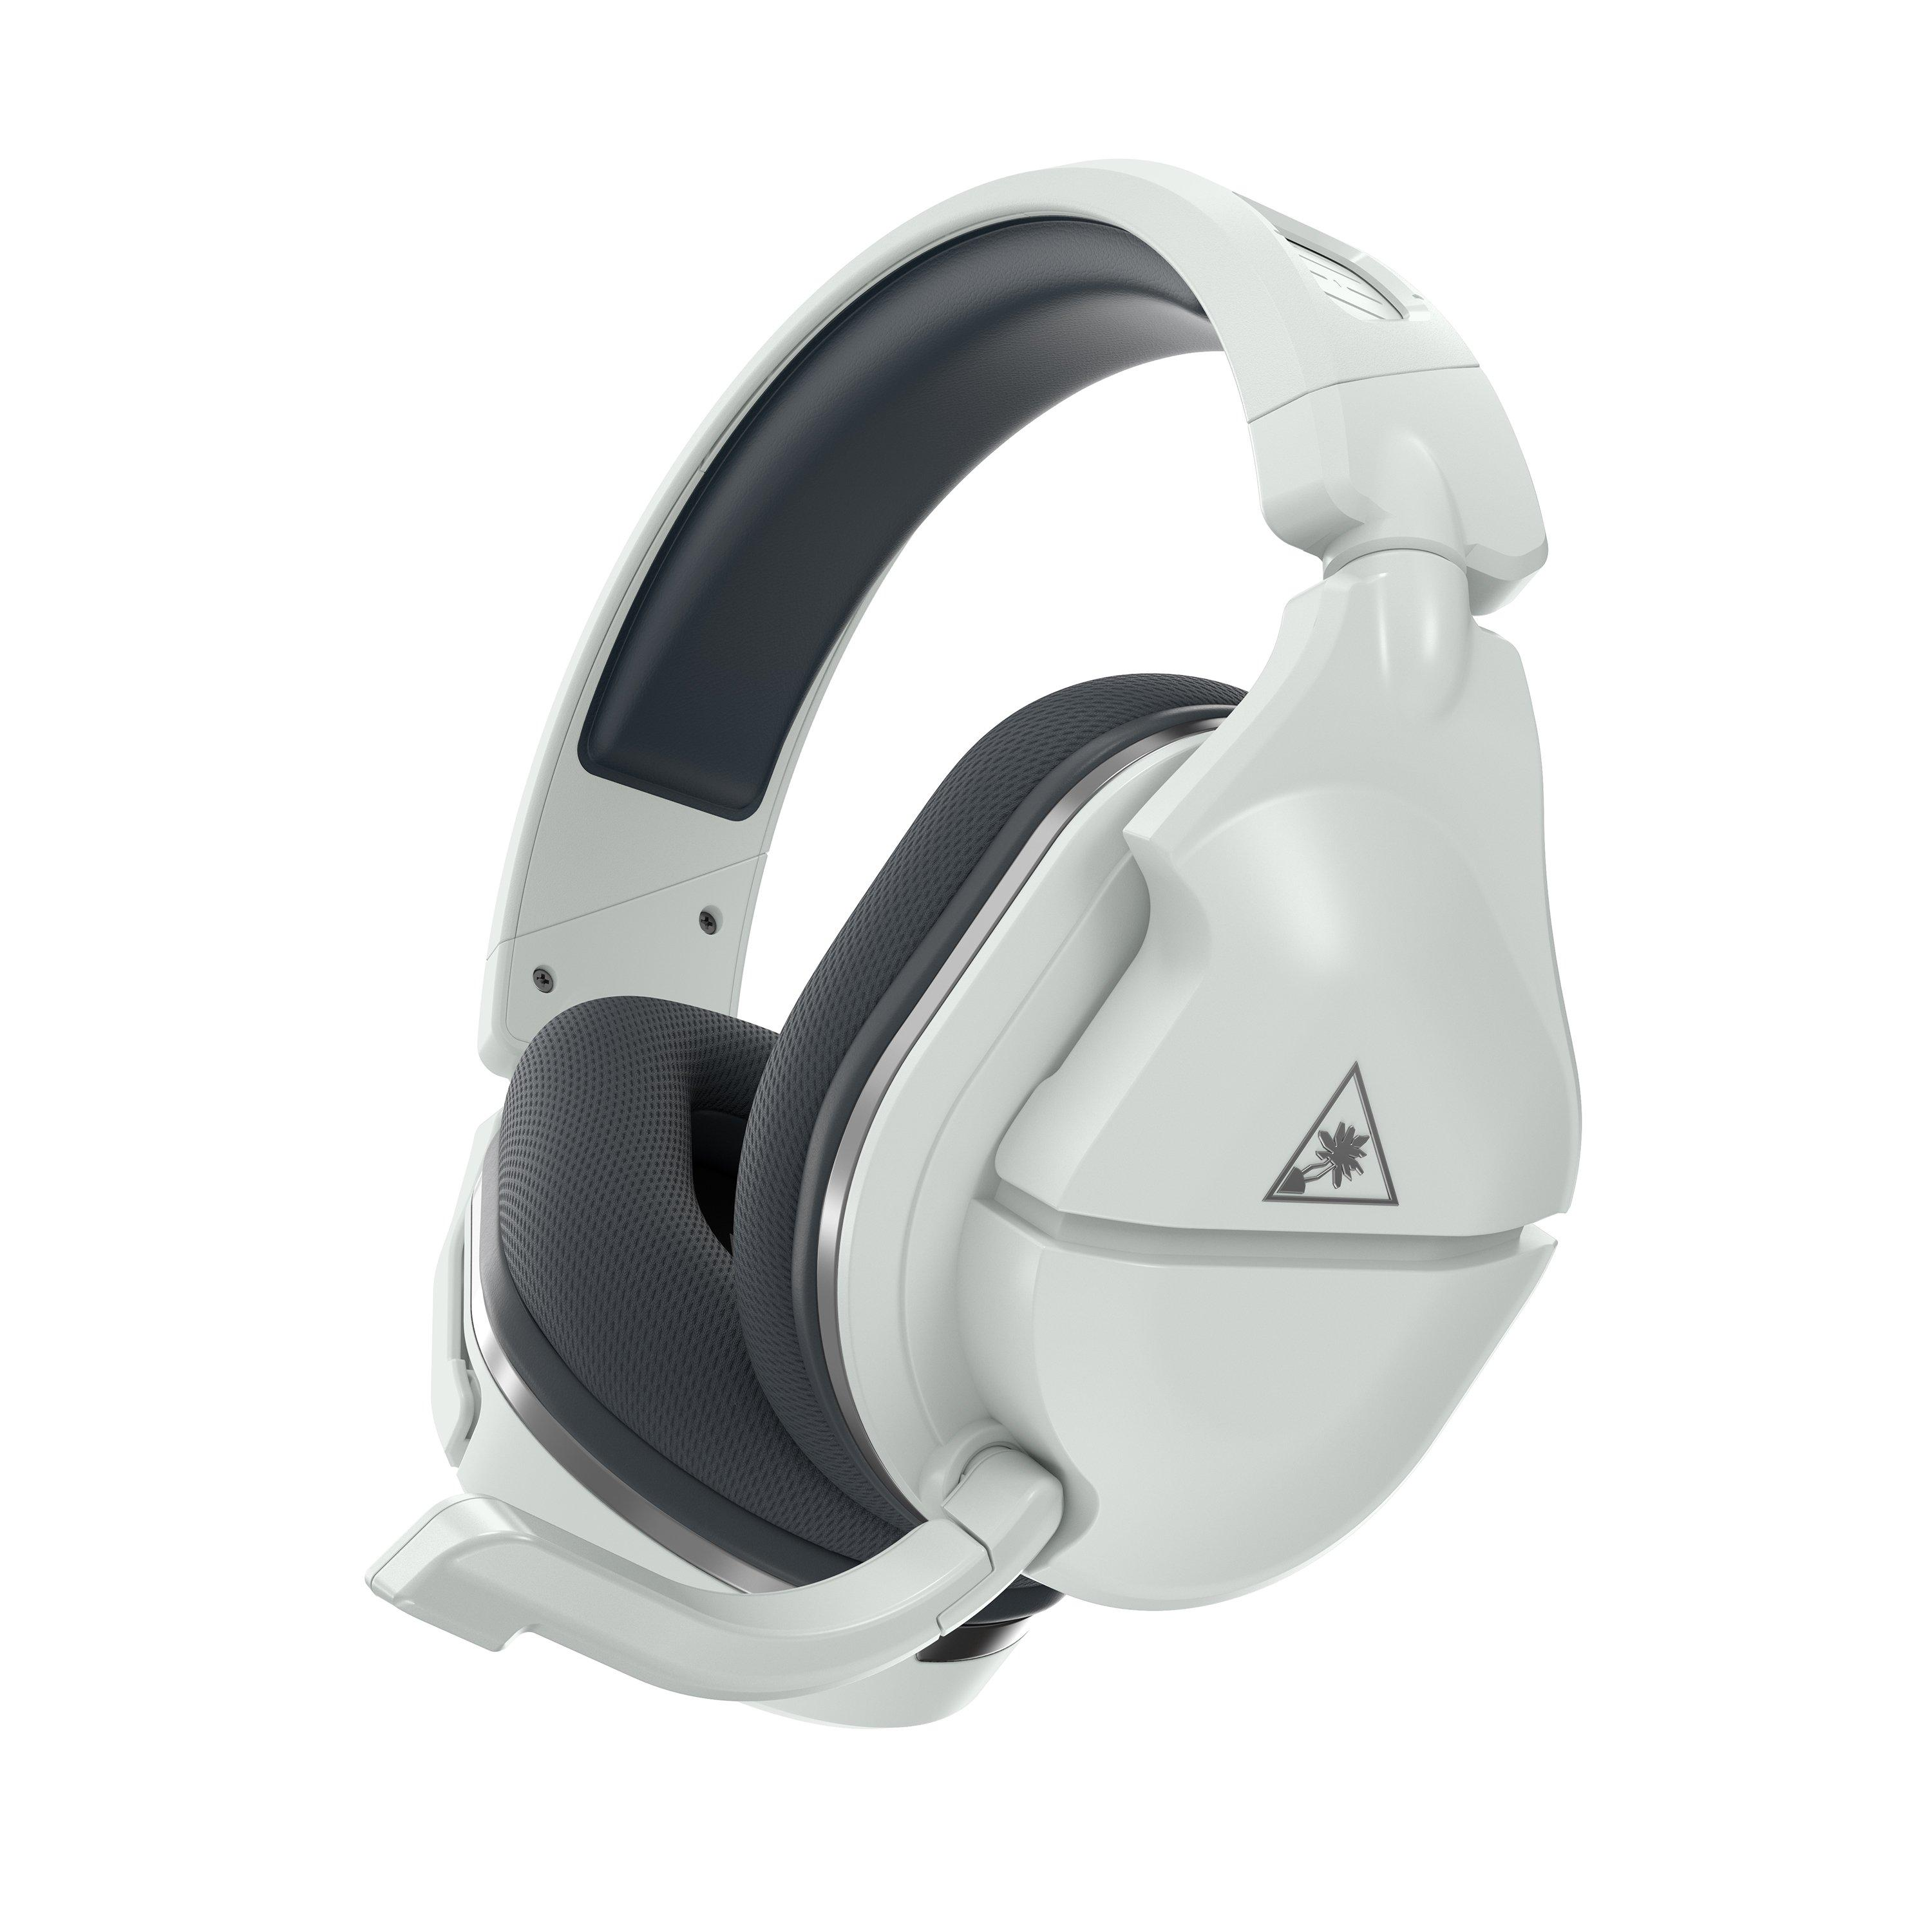 Stealth 600 Gen 2 White Wireless Gaming Headset for Xbox One